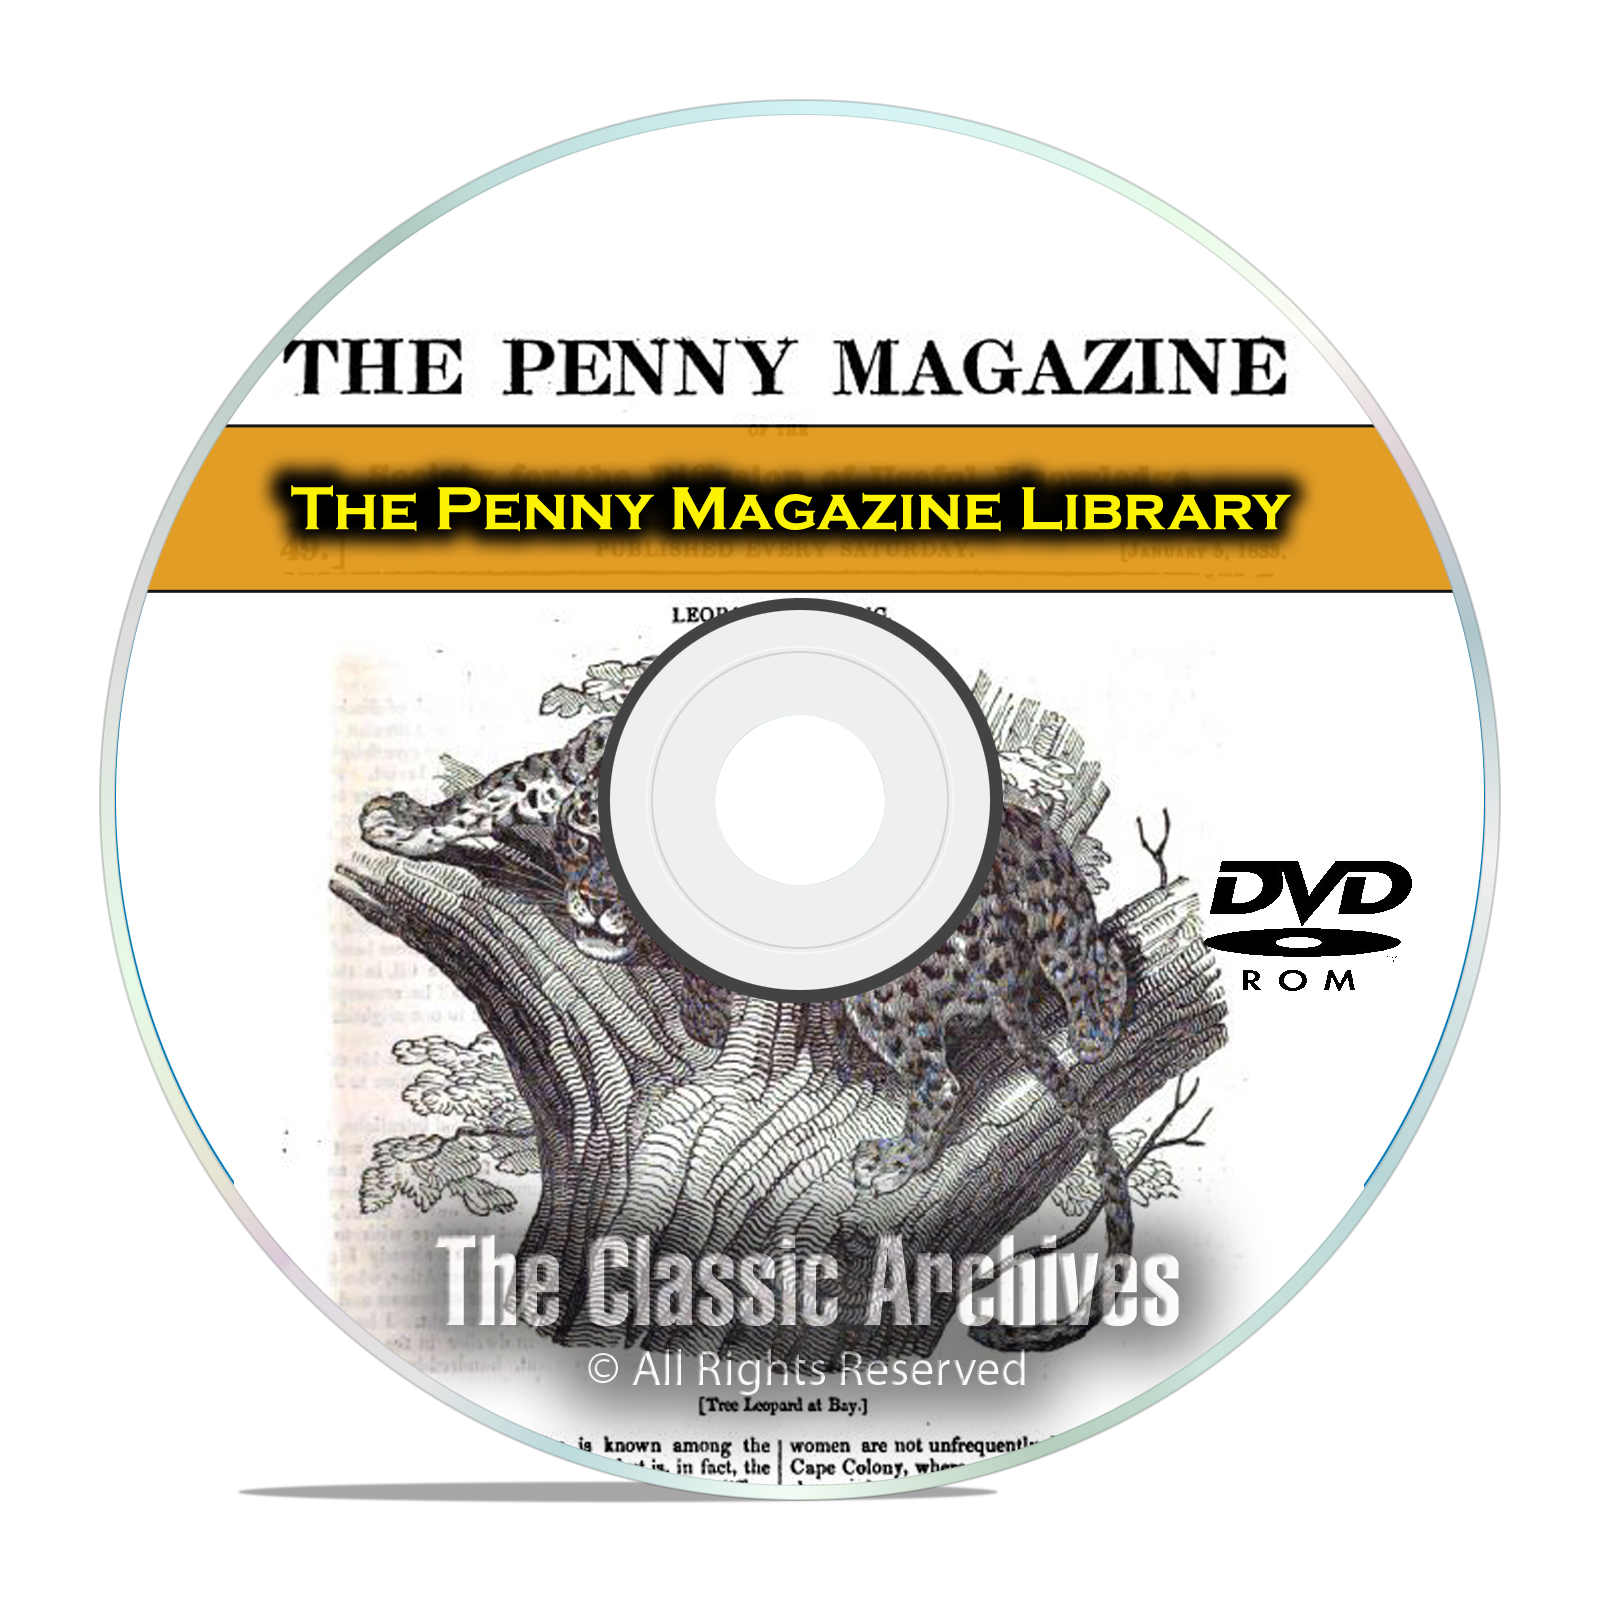 The Penny Magazine, 884 Issues, Useful Knowledge 30 Vol Cyclopaedia PDF DVD - Click Image to Close